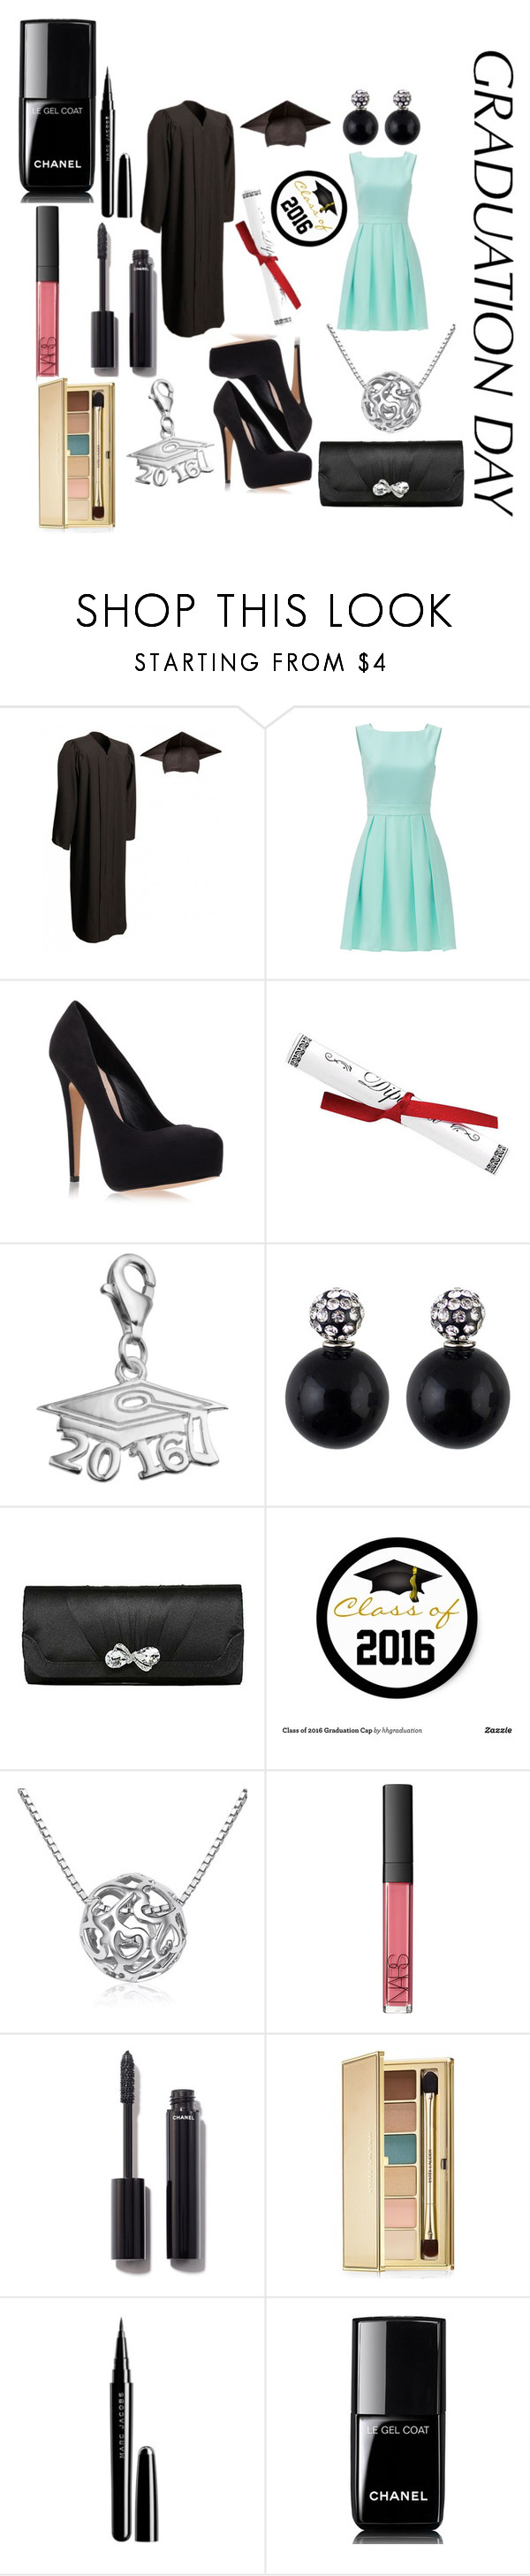 """Graduation"" by talibug ❤ liked on Polyvore featuring Kate Spade, Carvela Kurt Geiger, Personal Charm, NARS Cosmetics, Chanel, Estée Lauder, Marc Jacobs and graduationdaydress"